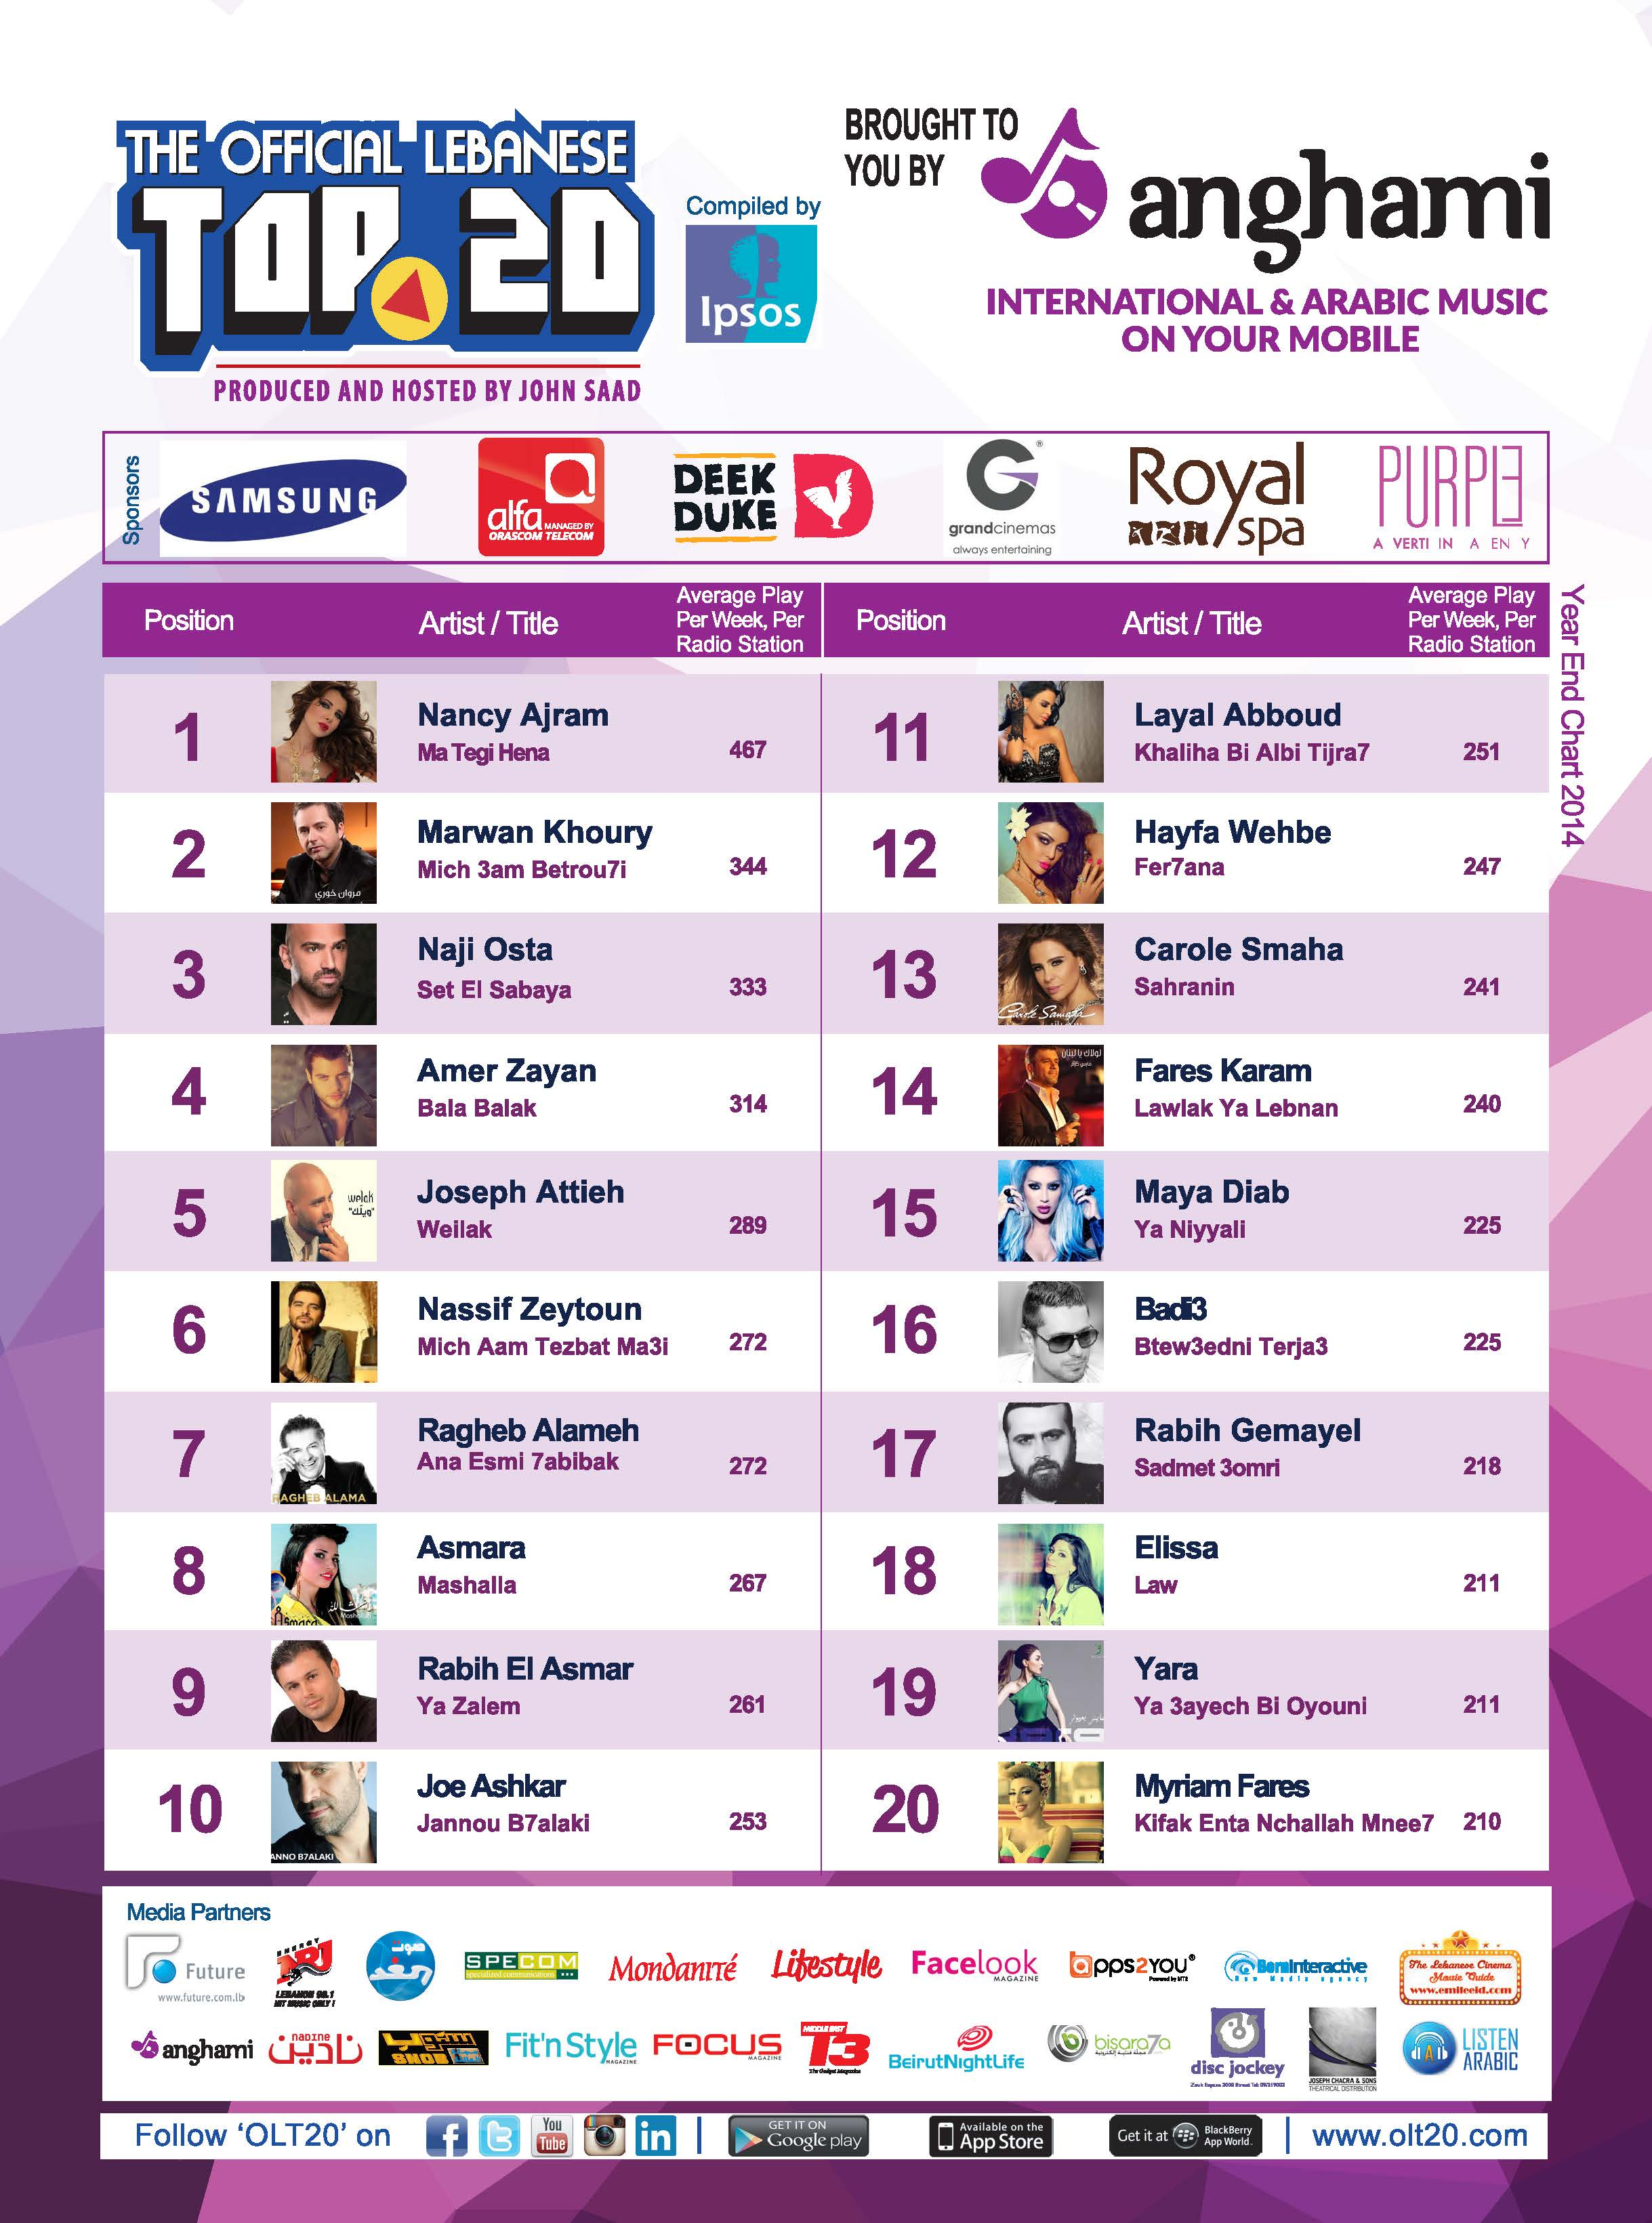 BeirutNightLife com Brings You the Official Lebanese Top 20 the